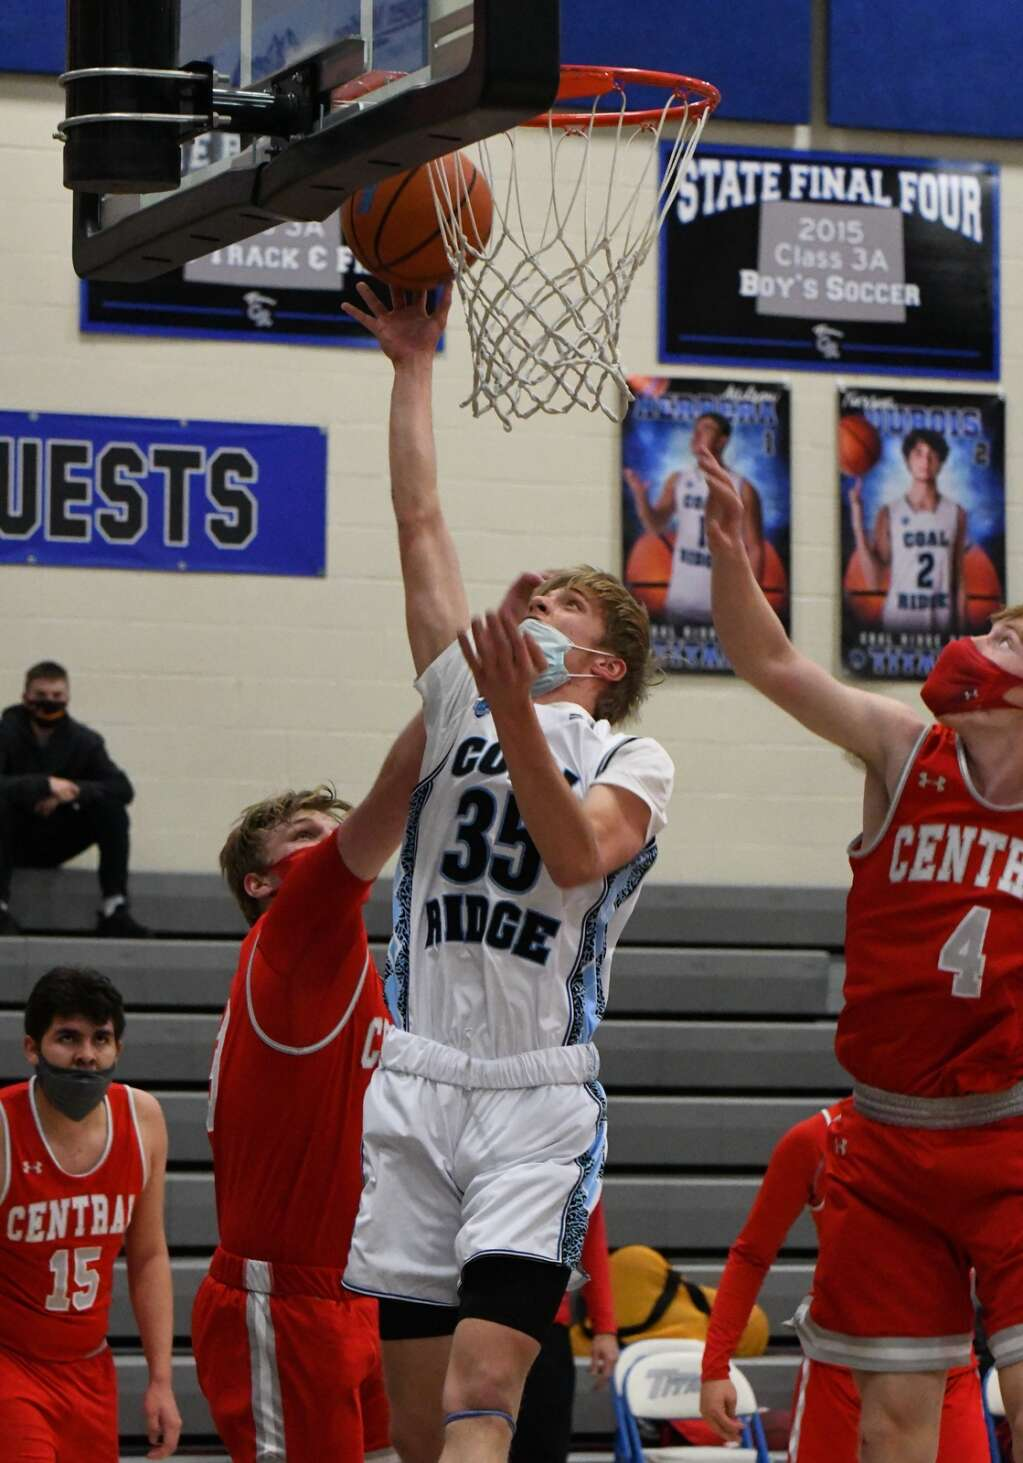 Coal Ridge Titan Kevin DiMarco jumps for the layup through the defending Grand Junction Central Warriors during Thursday night's game.  |Chelsea Self / Post Independent